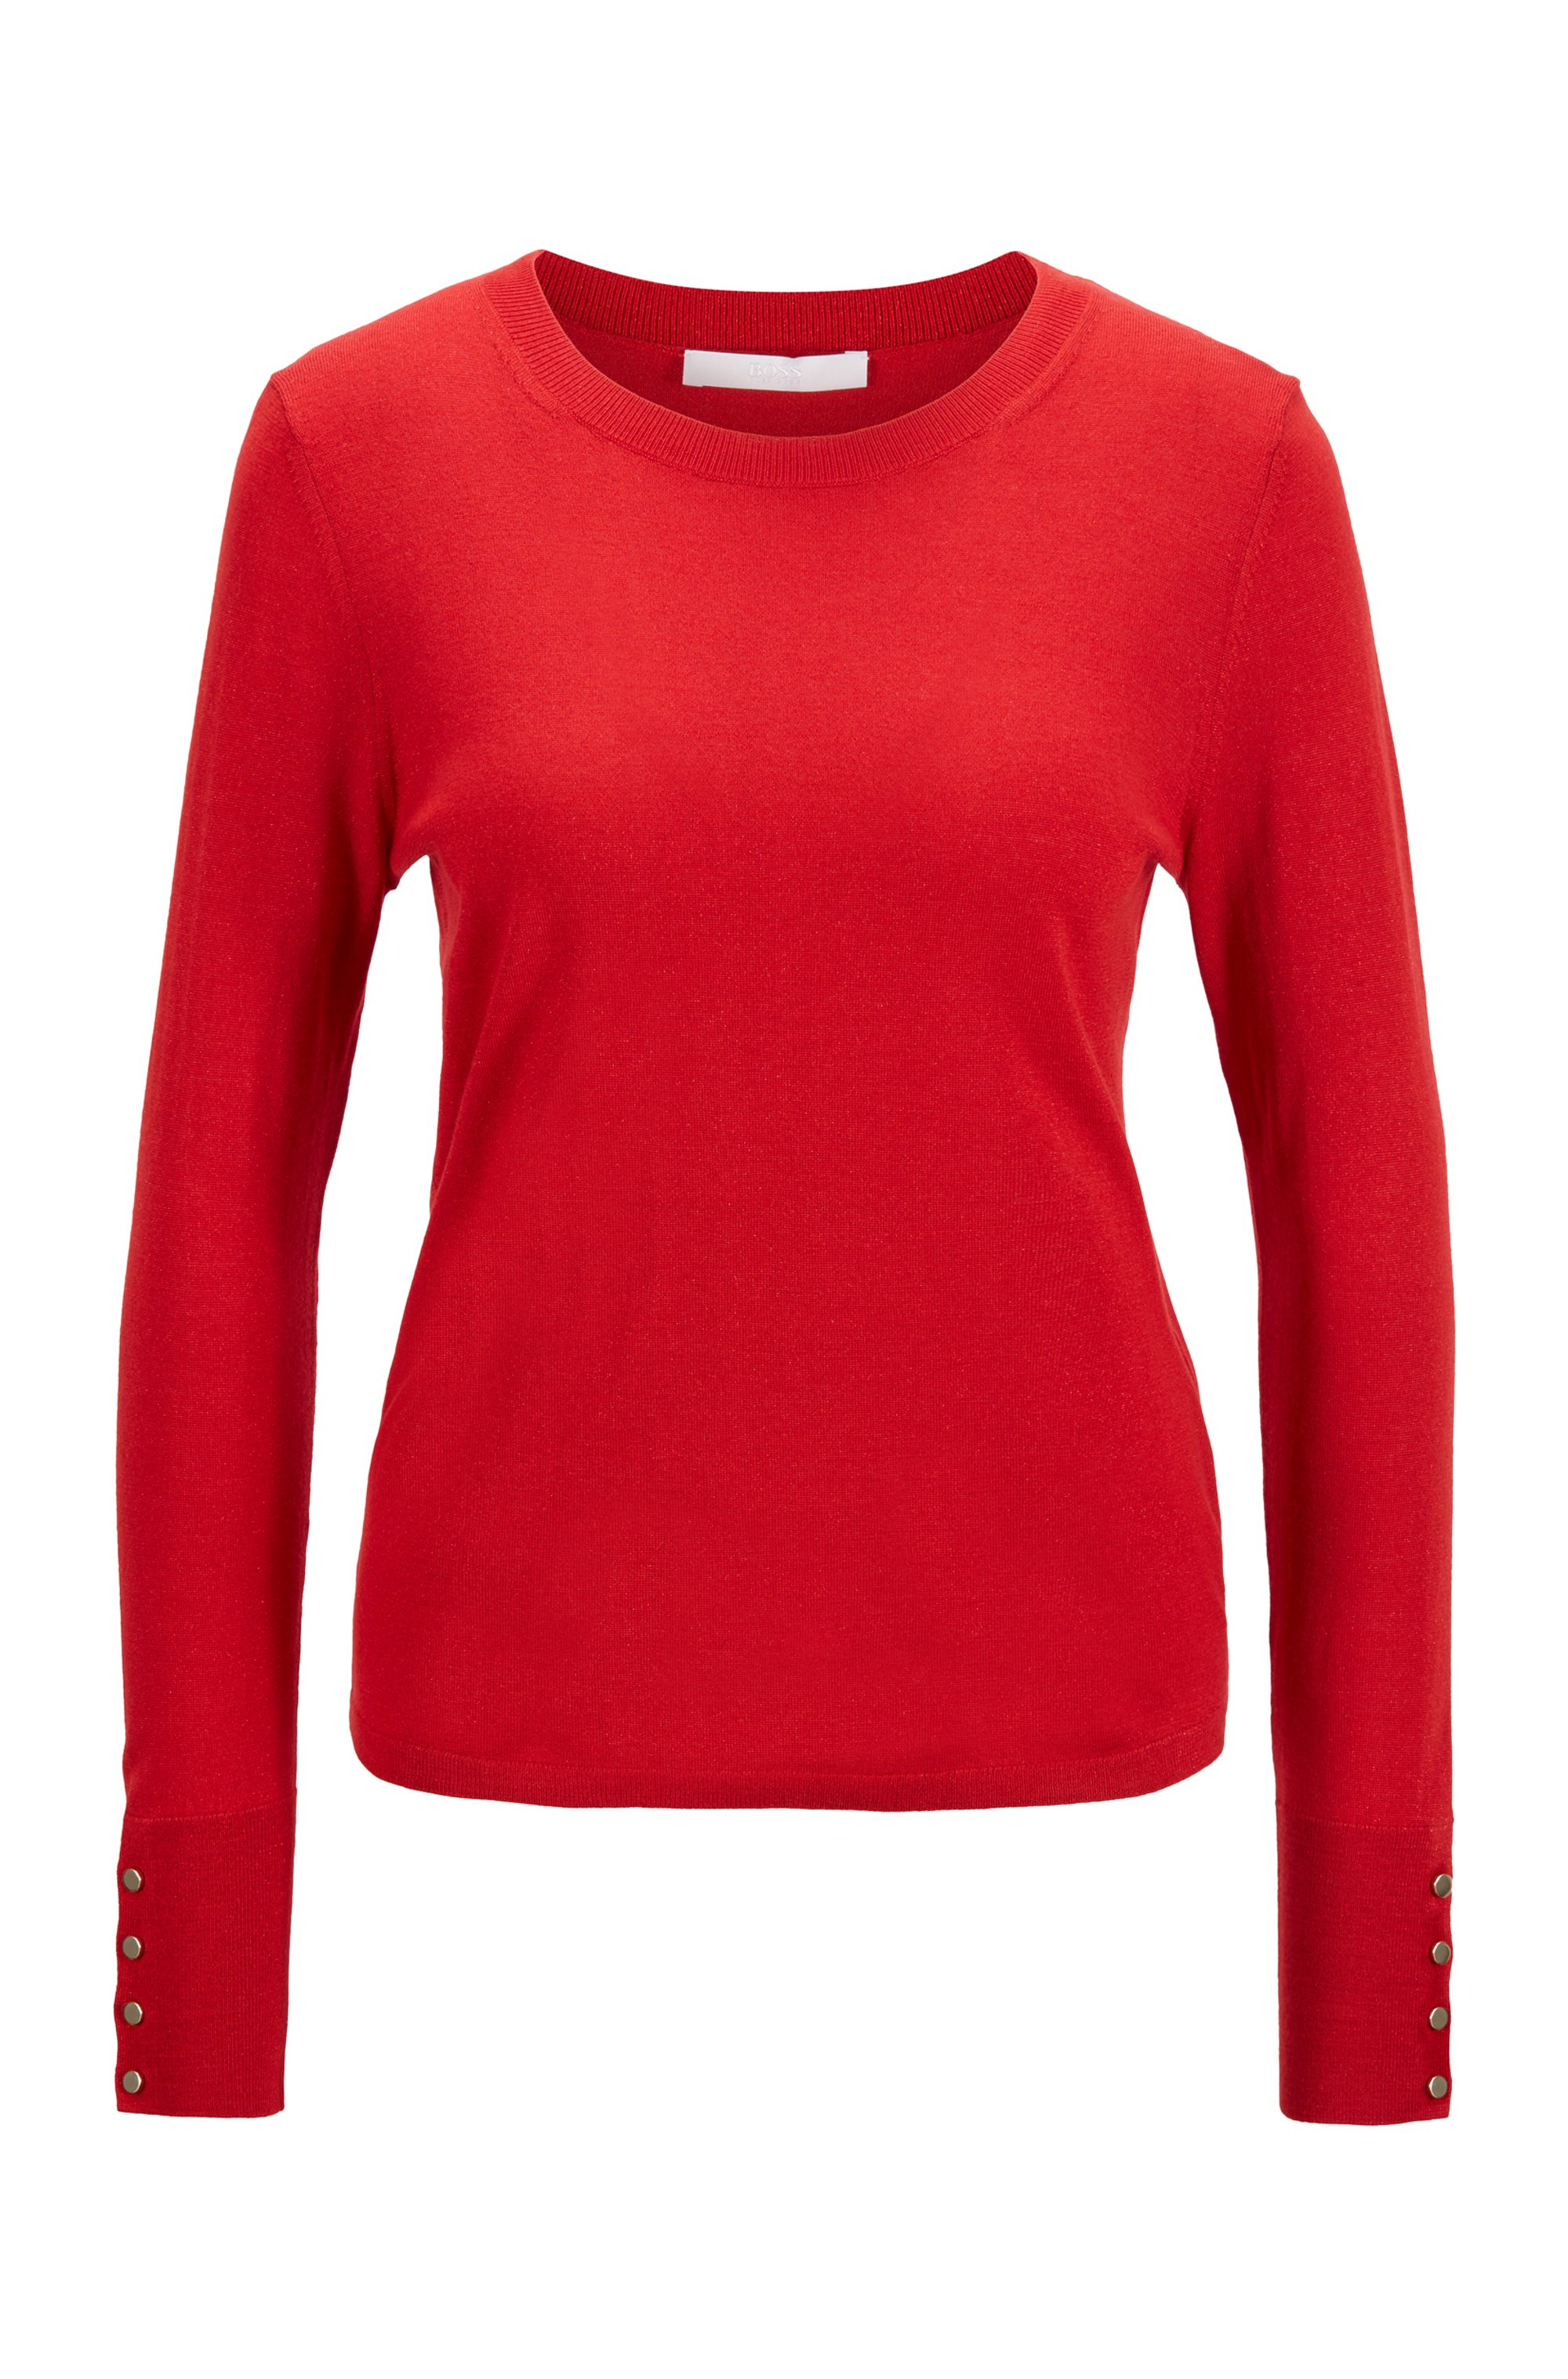 Merino-wool blend sweater with gold-toned buttons, light pink